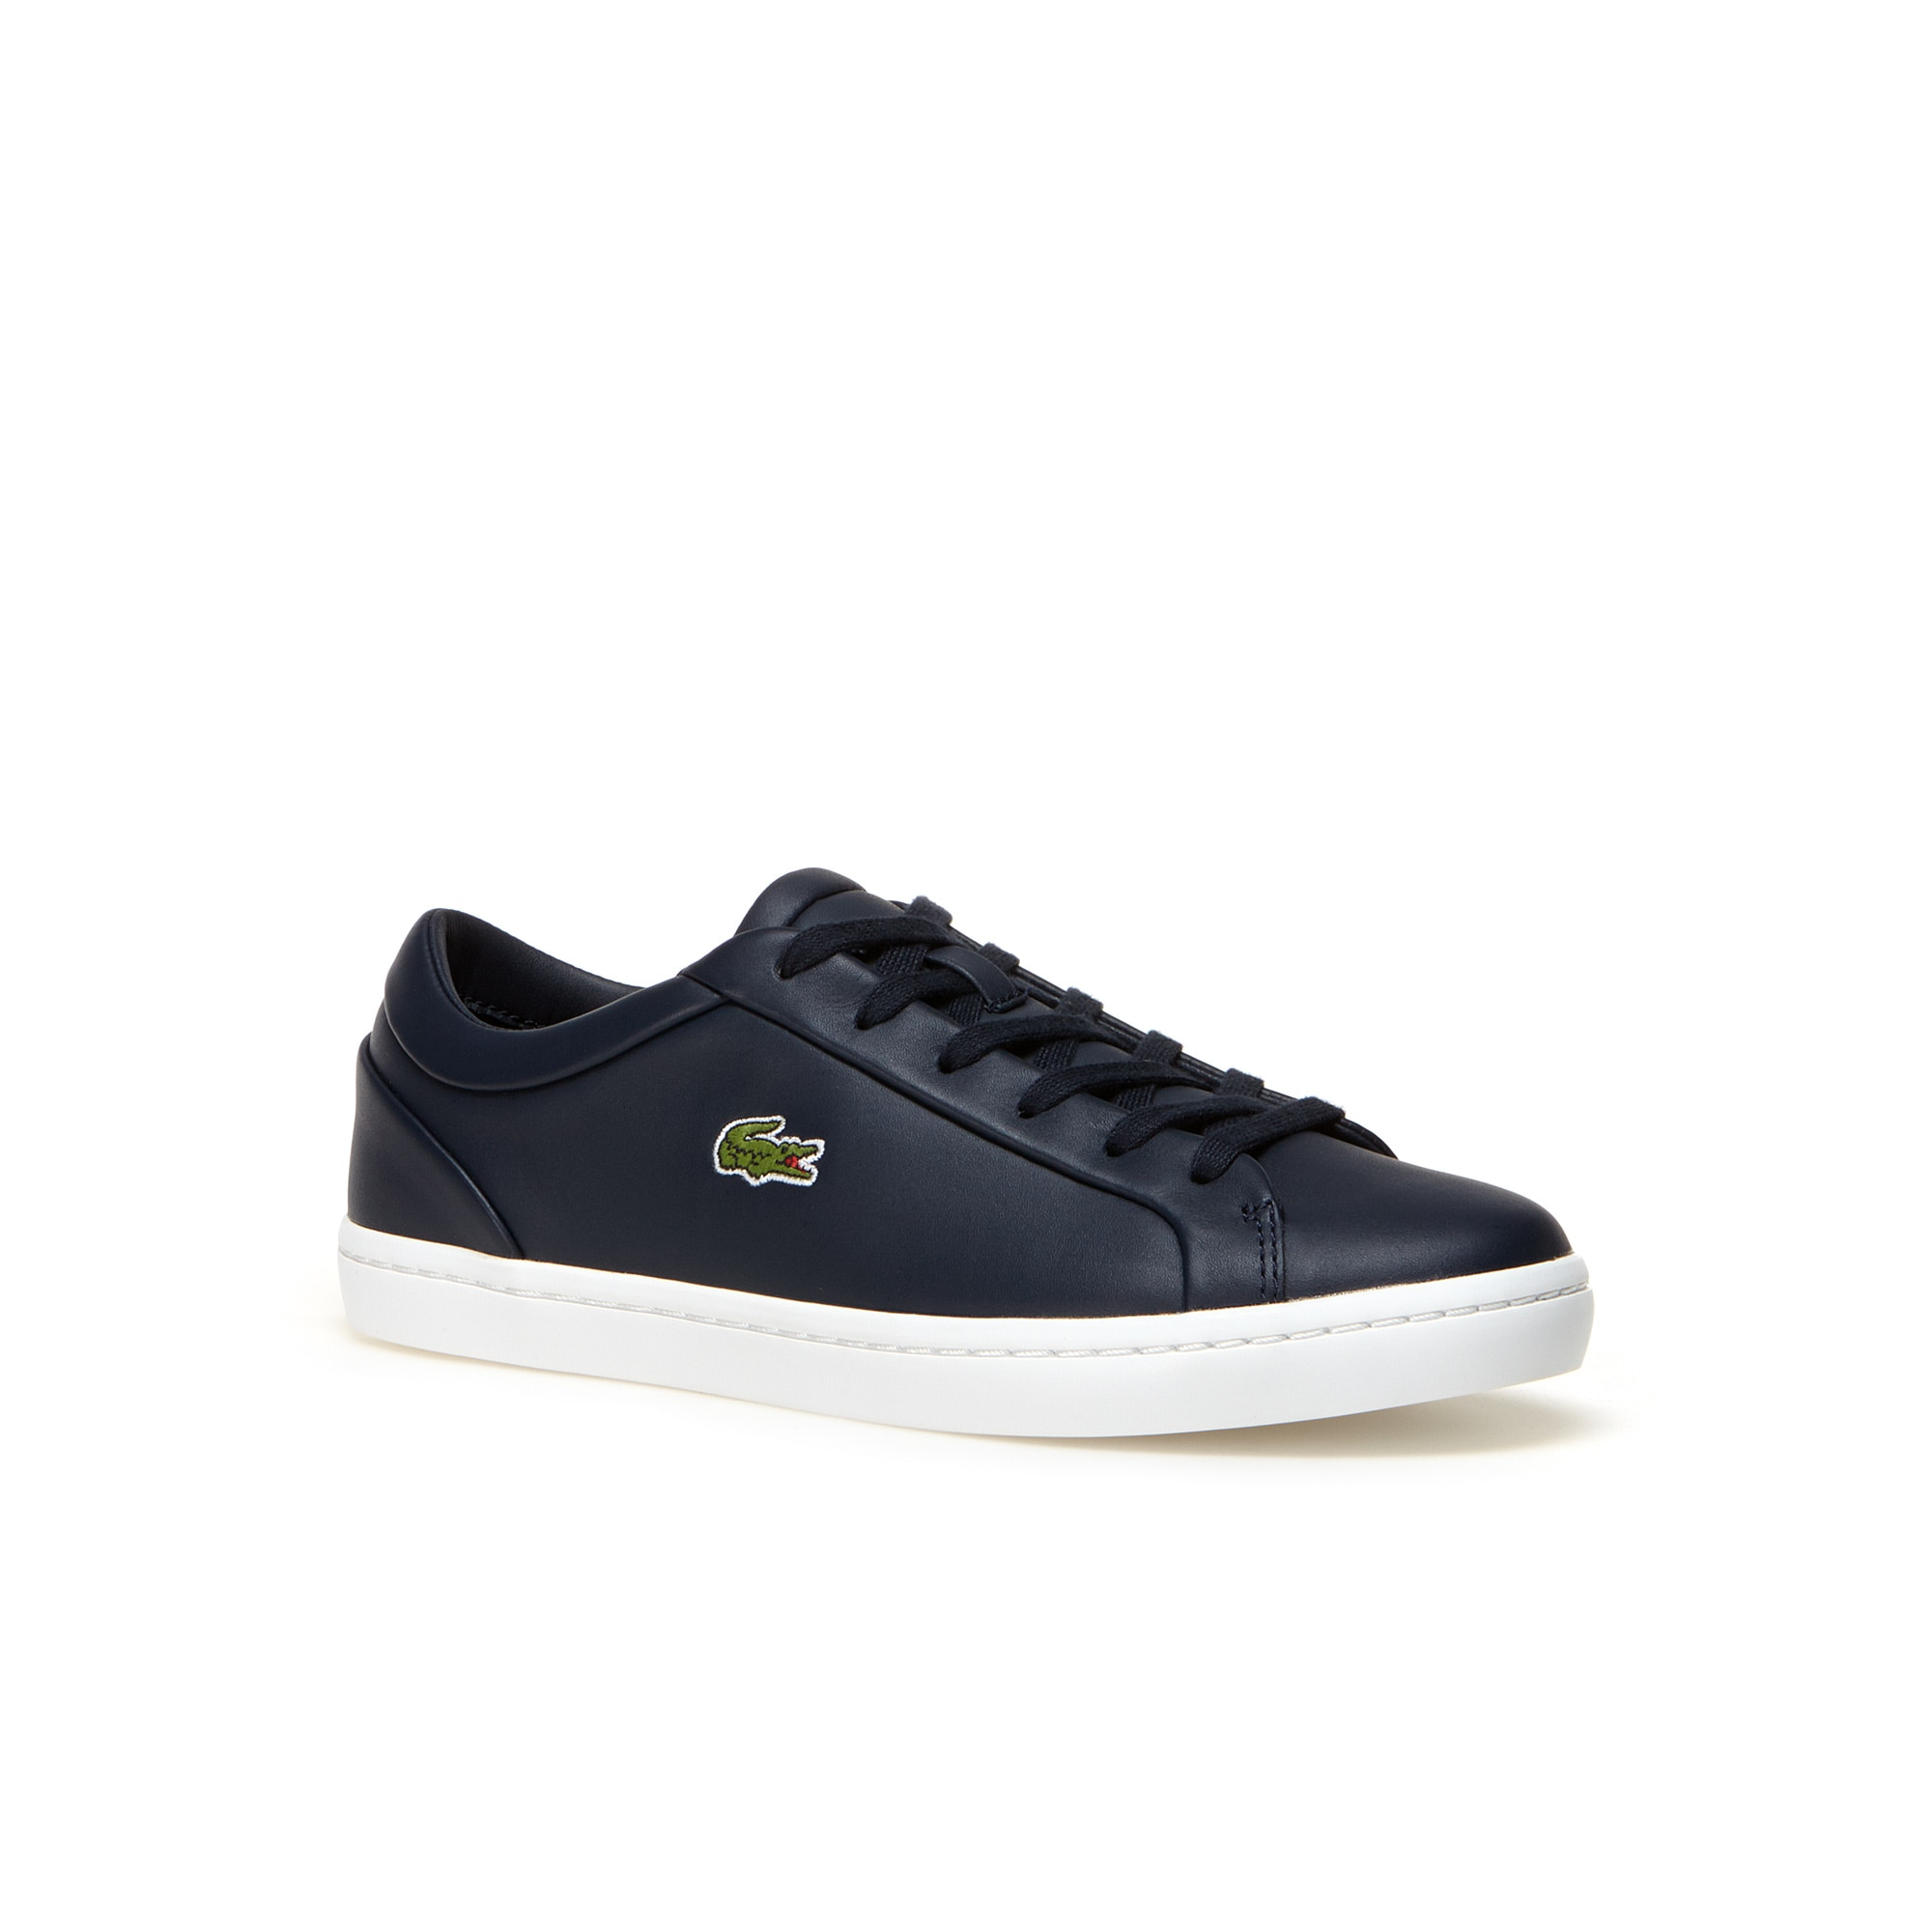 Australia Mens Lacoste Trainers - Navy MN06251